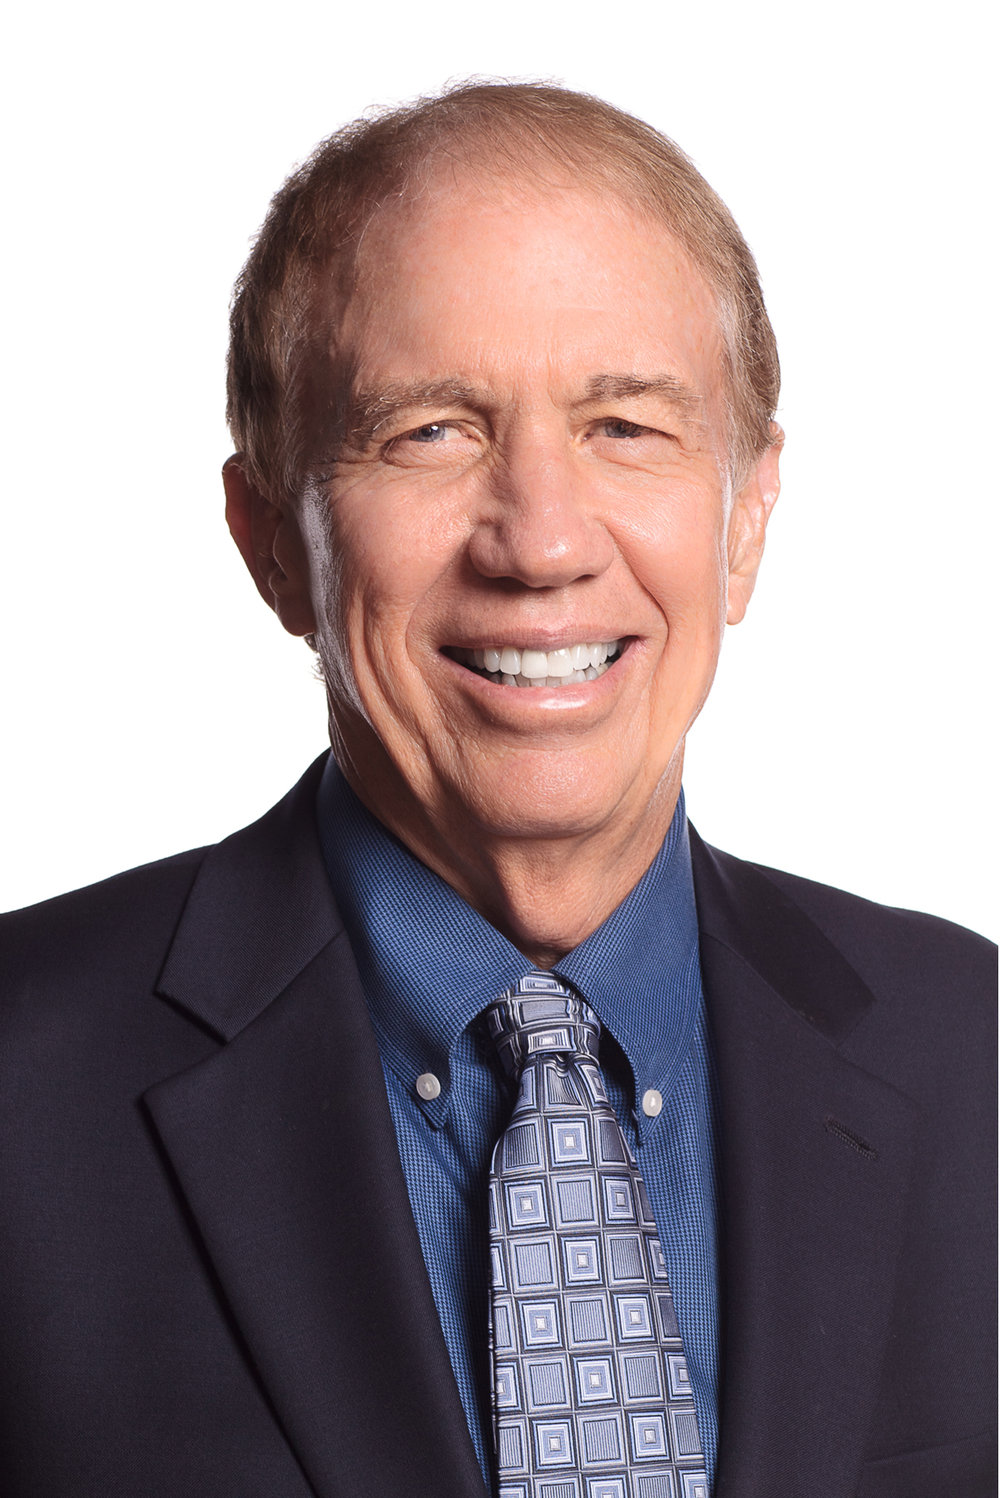 Jim Loehr    Business strategist, CEO Human Performance Institute